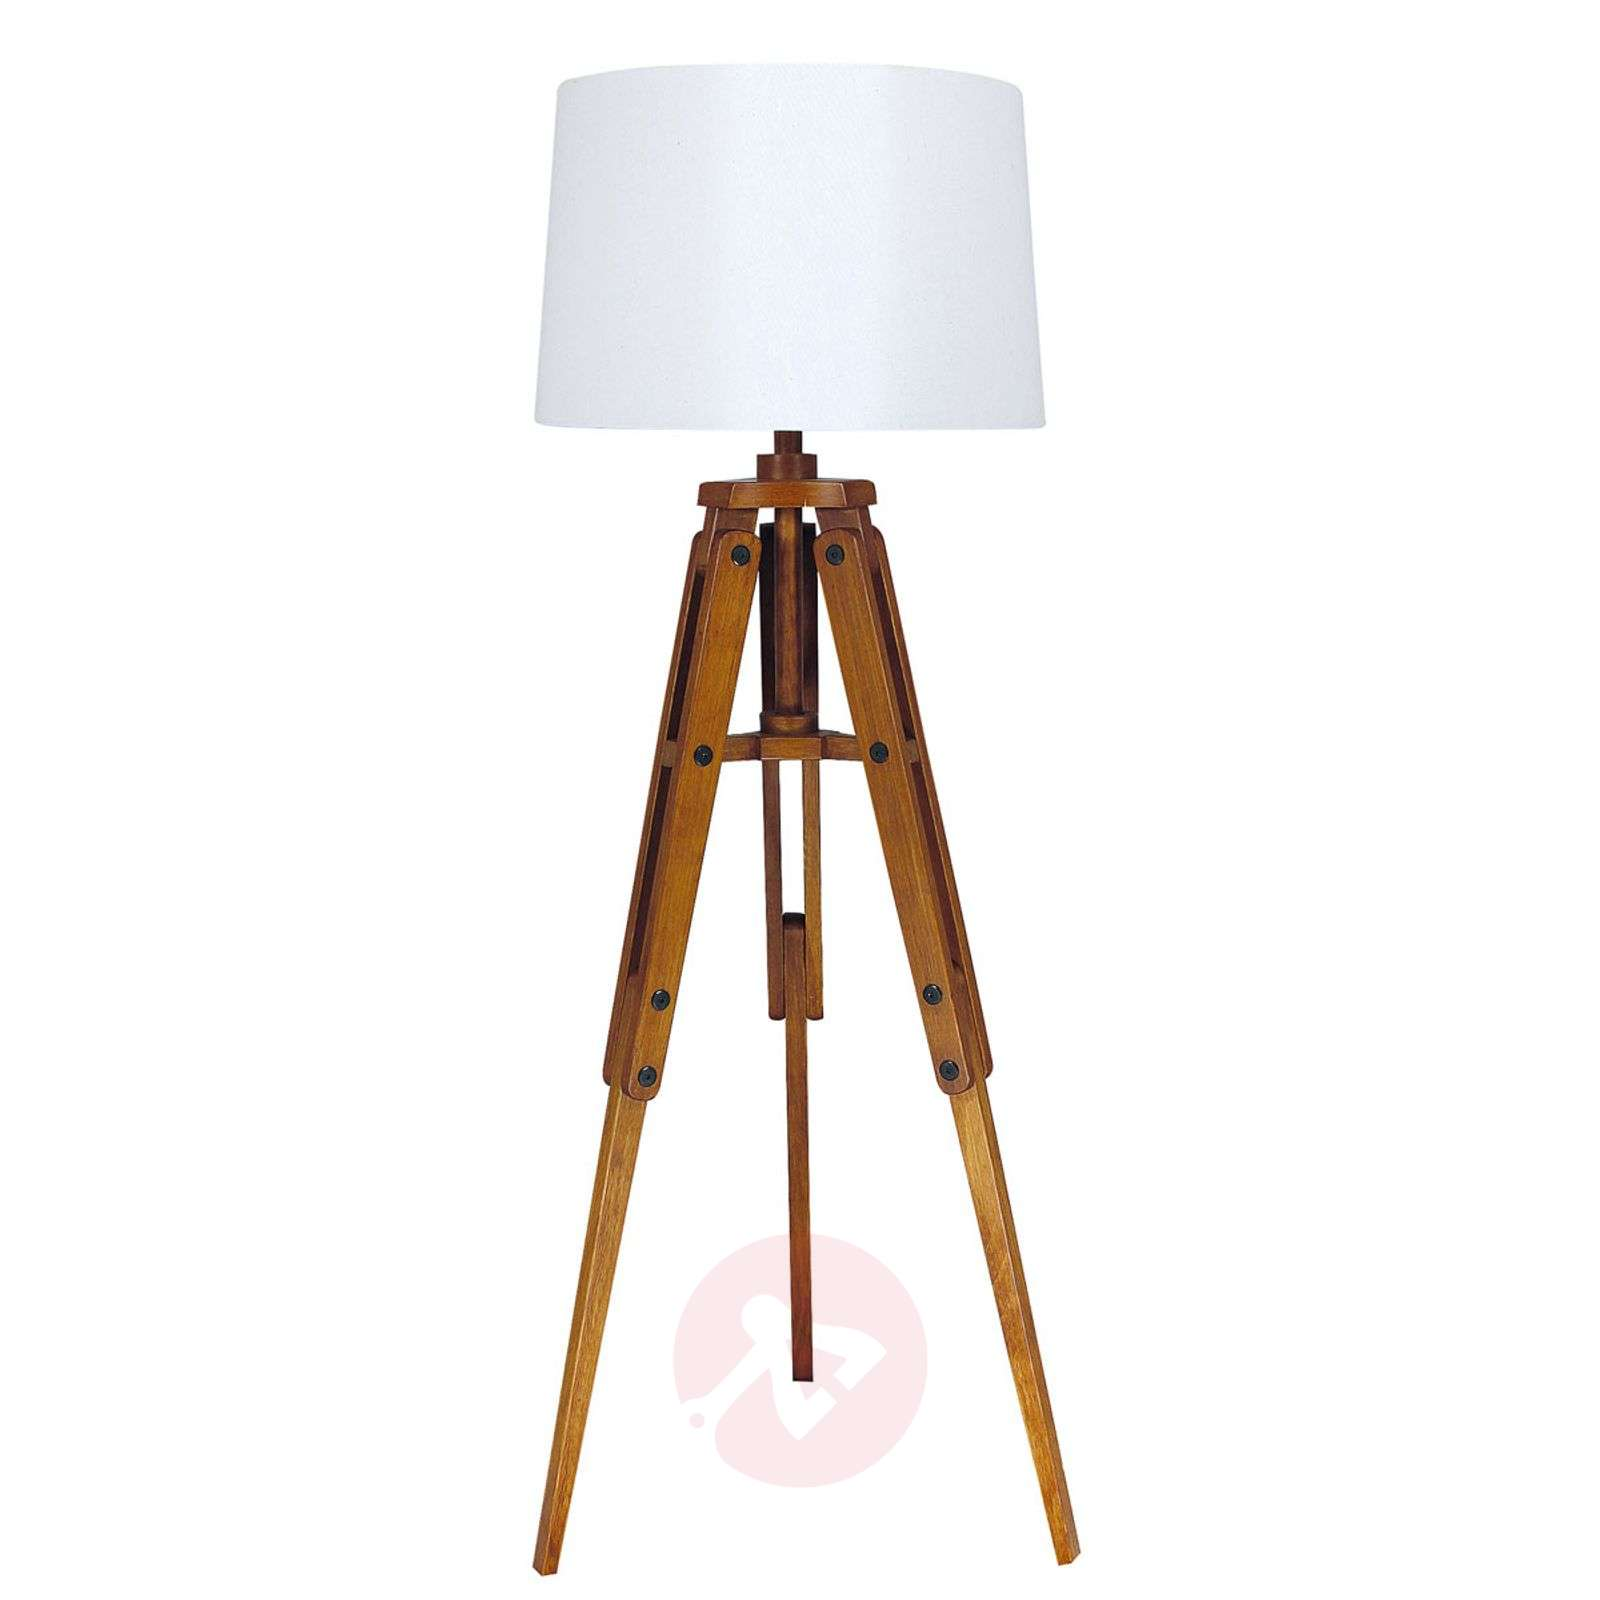 Floor Lamp Marvin With Tripod Body Height 122 Cm Lights